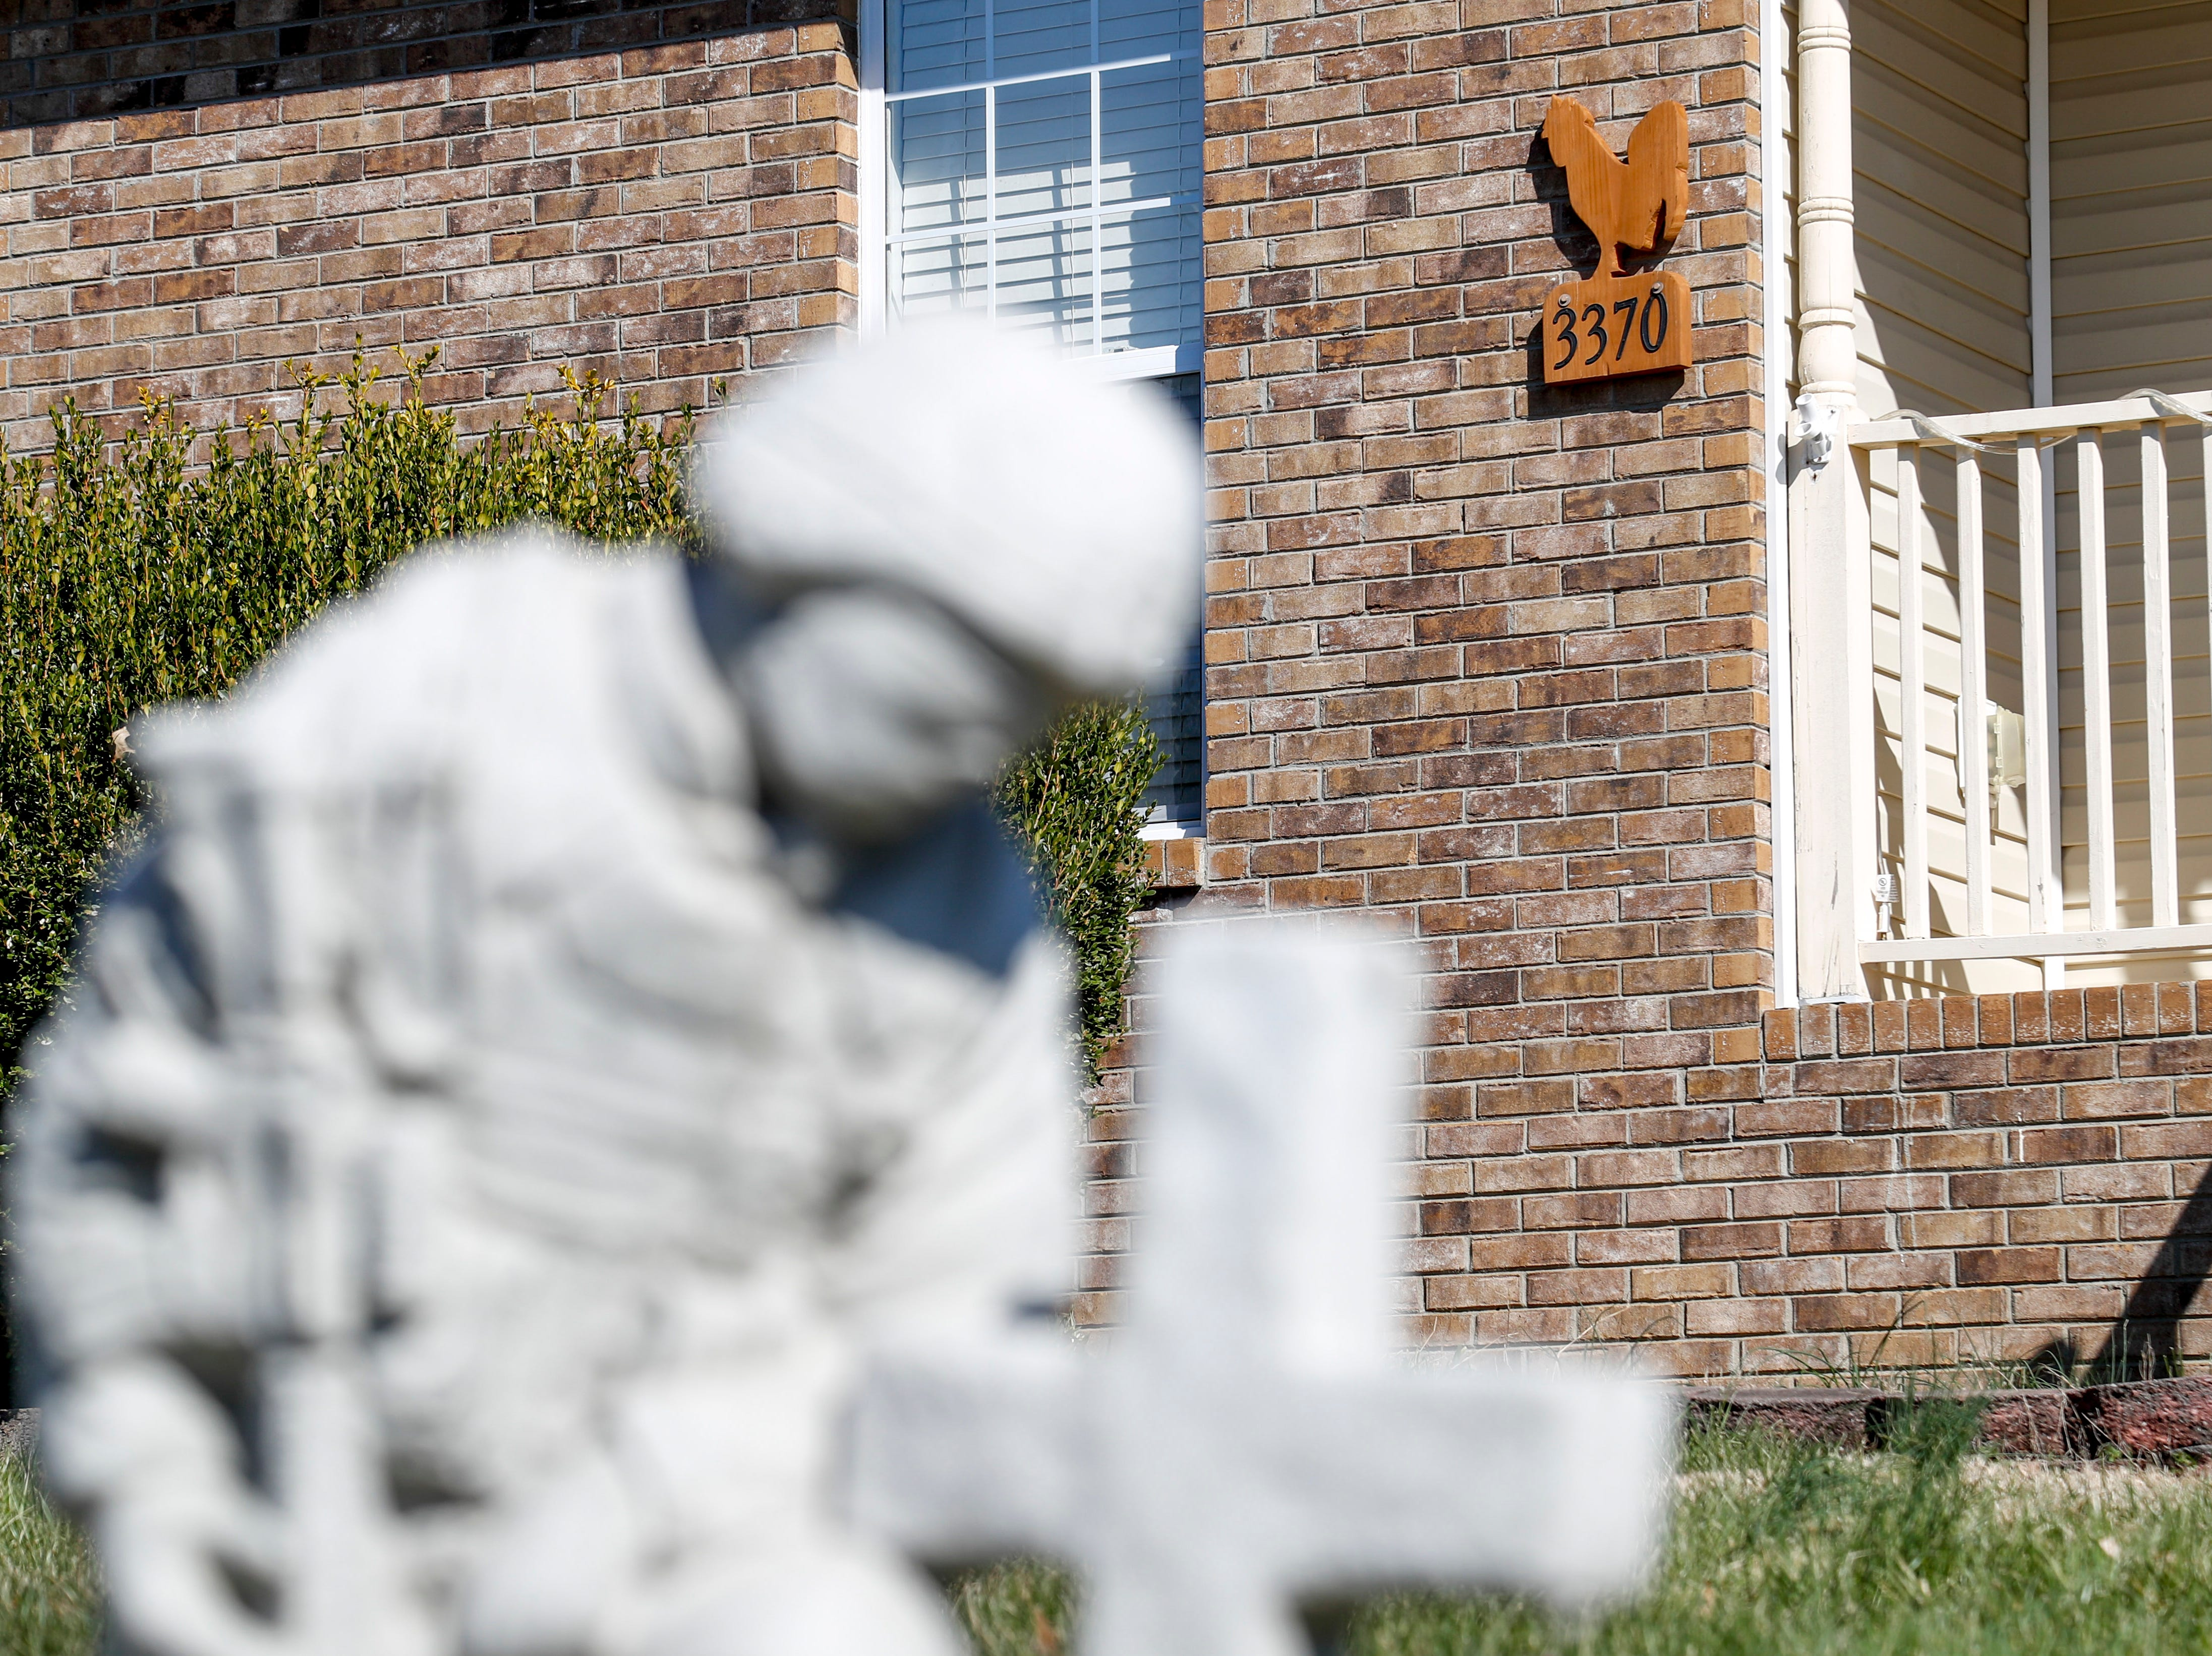 A statue of a soldier rests in the front yard of Heath Stamper and Shawna Lund's home in Clarksville, Tenn., on Wednesday, March 6, 2019.